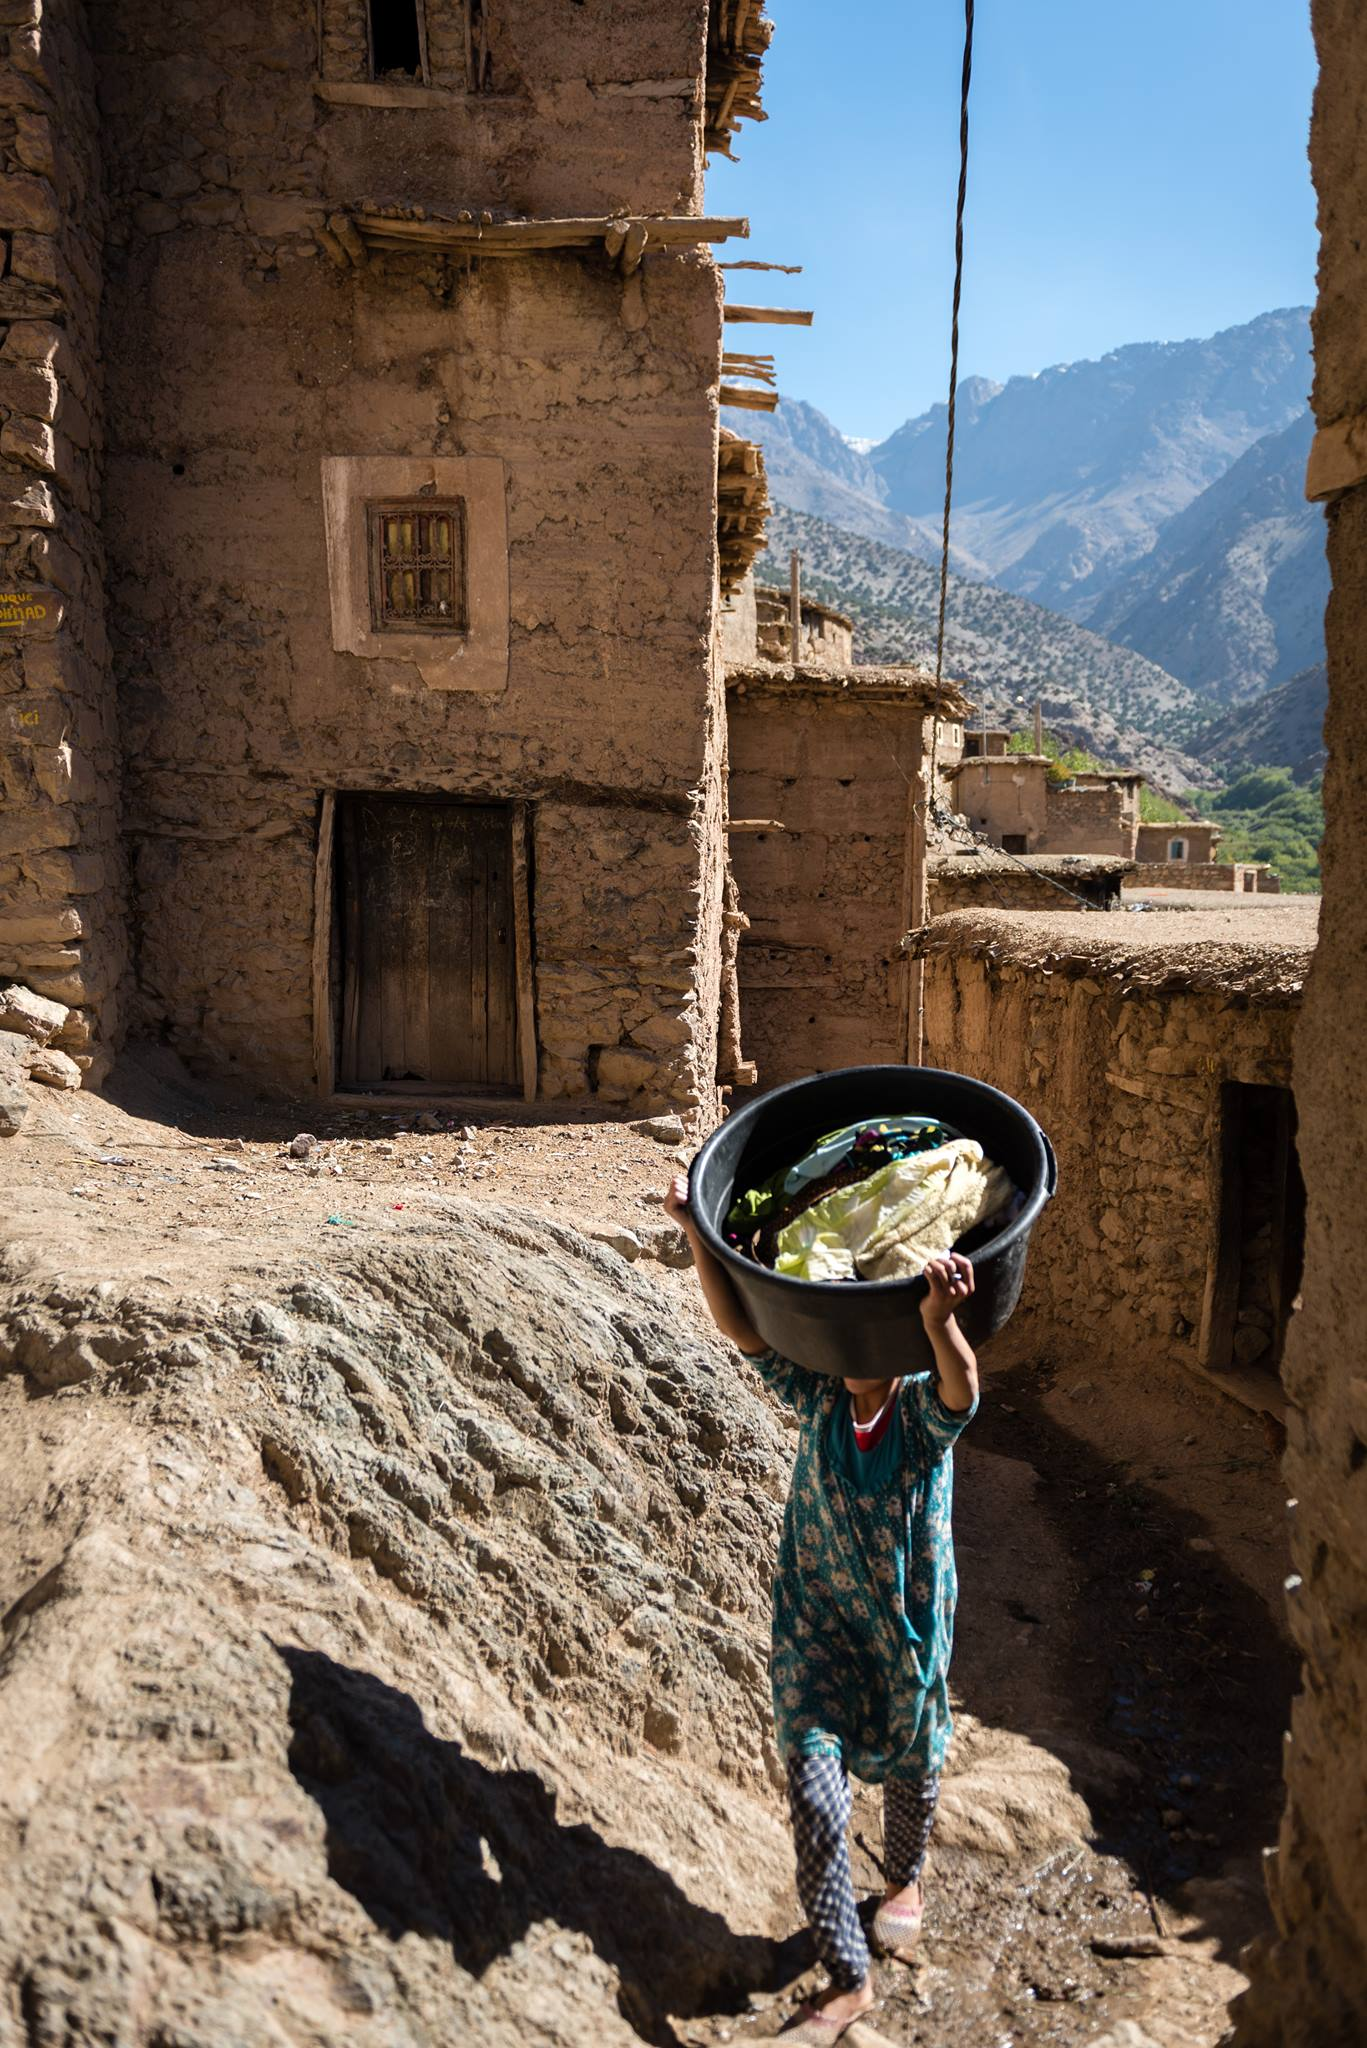 Woman carrying laundry on her head, Hight Atals mountins